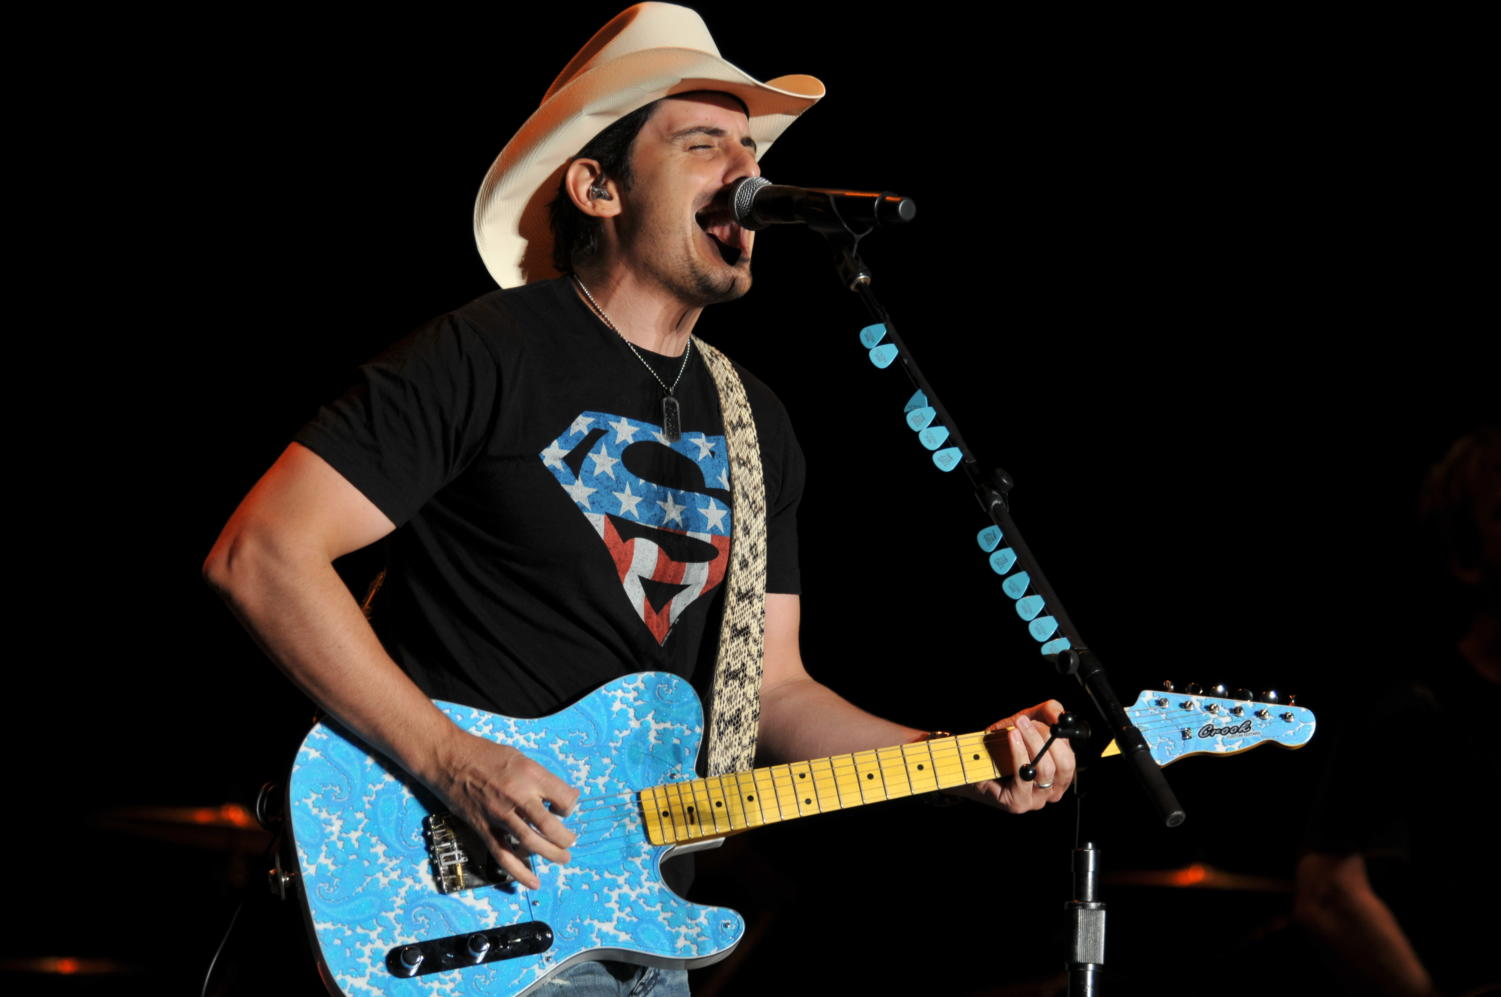 110908-N-DG679-045 MAYPORT, Fla. (Sept. 8, 2011) Country music star Brad Paisley performs to more than 11,000 members of the Naval Station Mayport community. (U.S. Navy photo by Mass Communication Specialist 1st Class Toiete Jackson/Released)